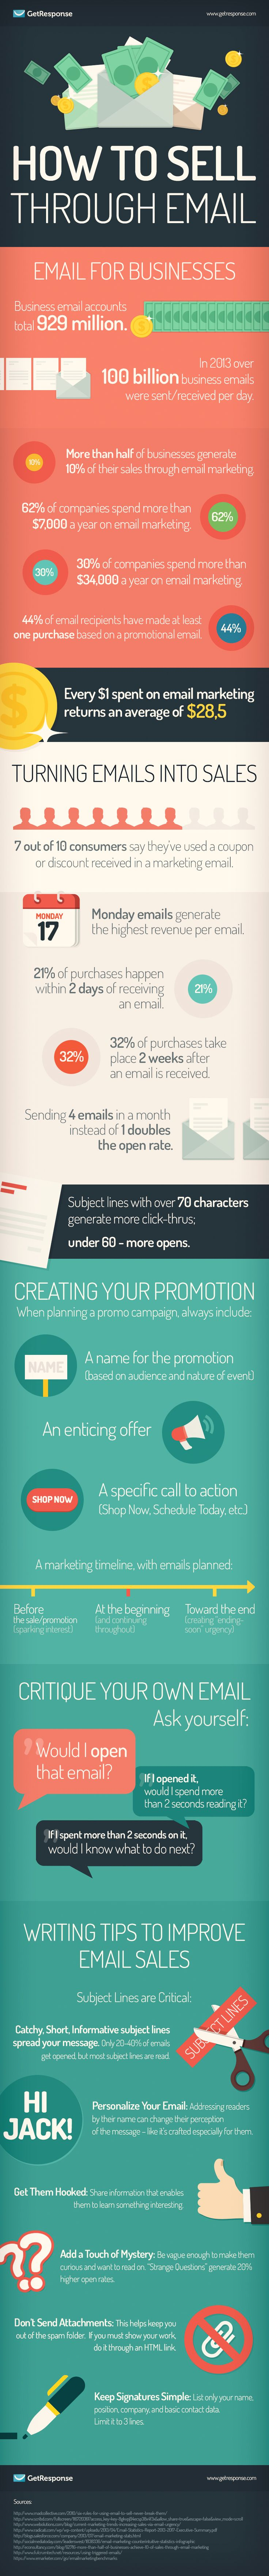 How to Sell Through Email www.socialmediamamma.com Email marketing Infographic